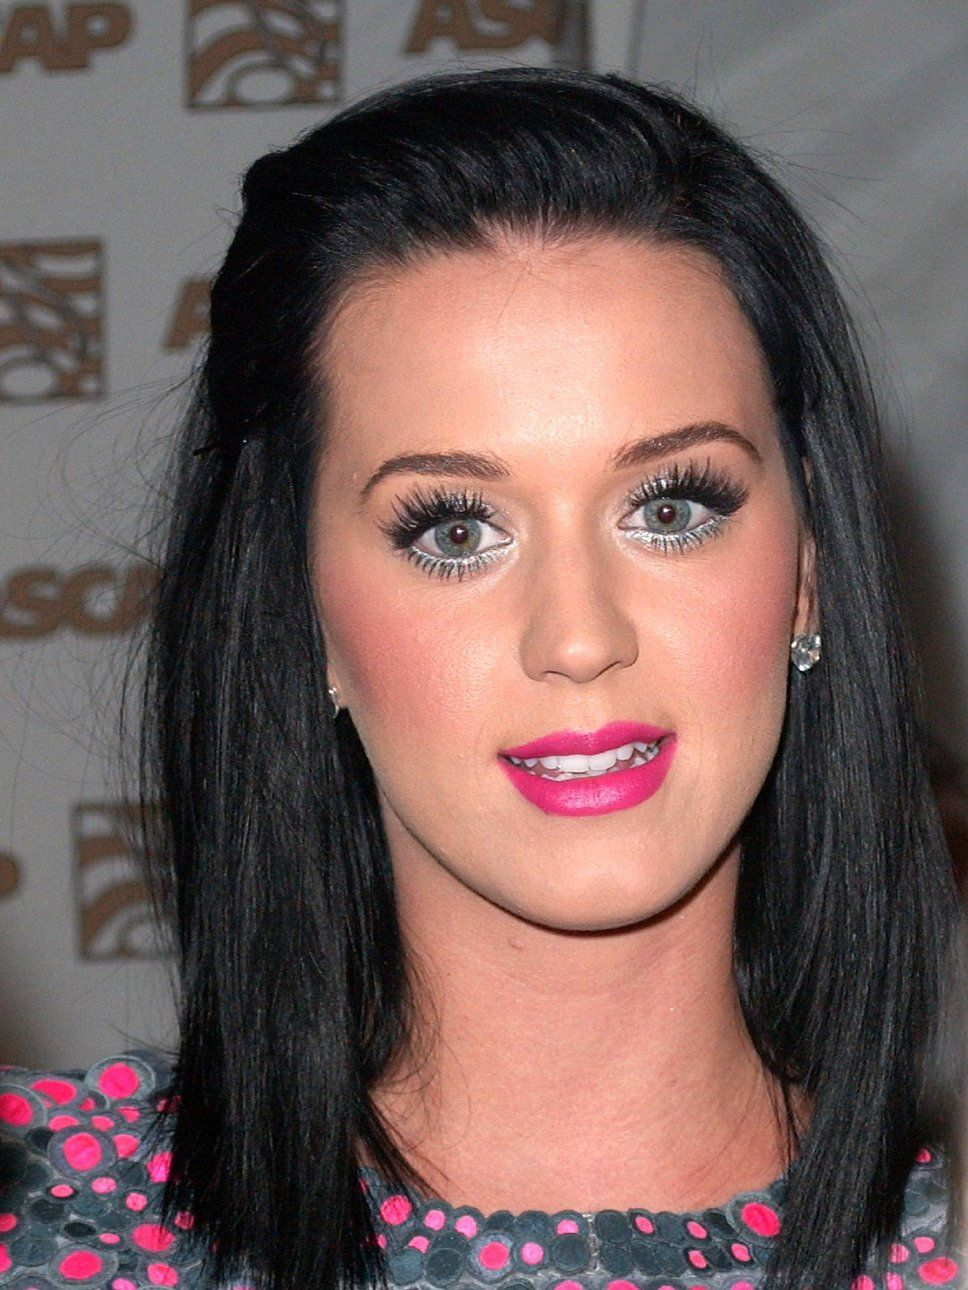 Katy Perry Katy Perry Pinterest Katy perry Katy perry